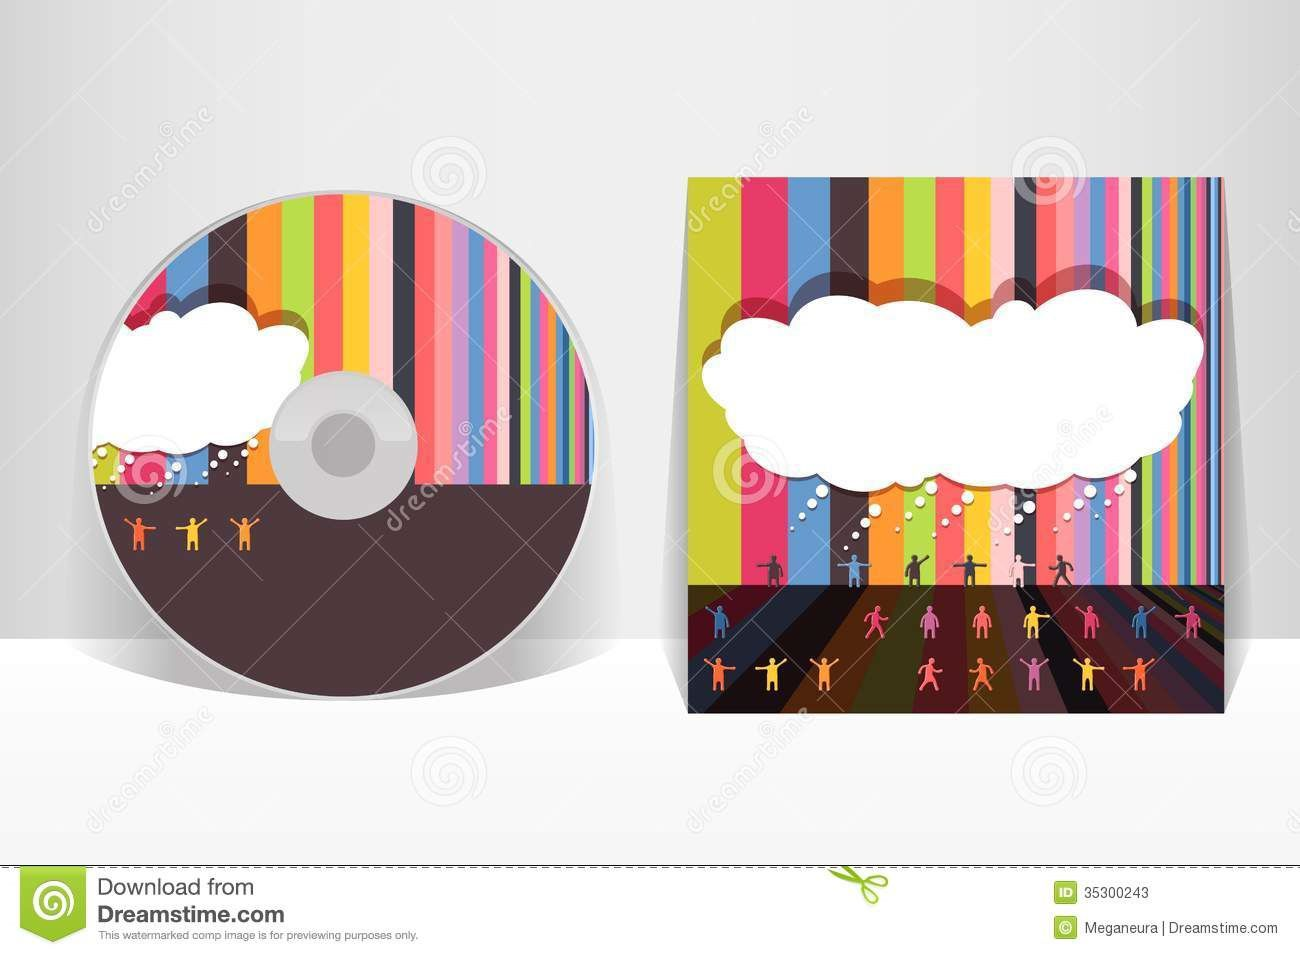 005 Staggering Cd Cover Design Template Example  Free Vector Illustration Word Psd DownloadFull